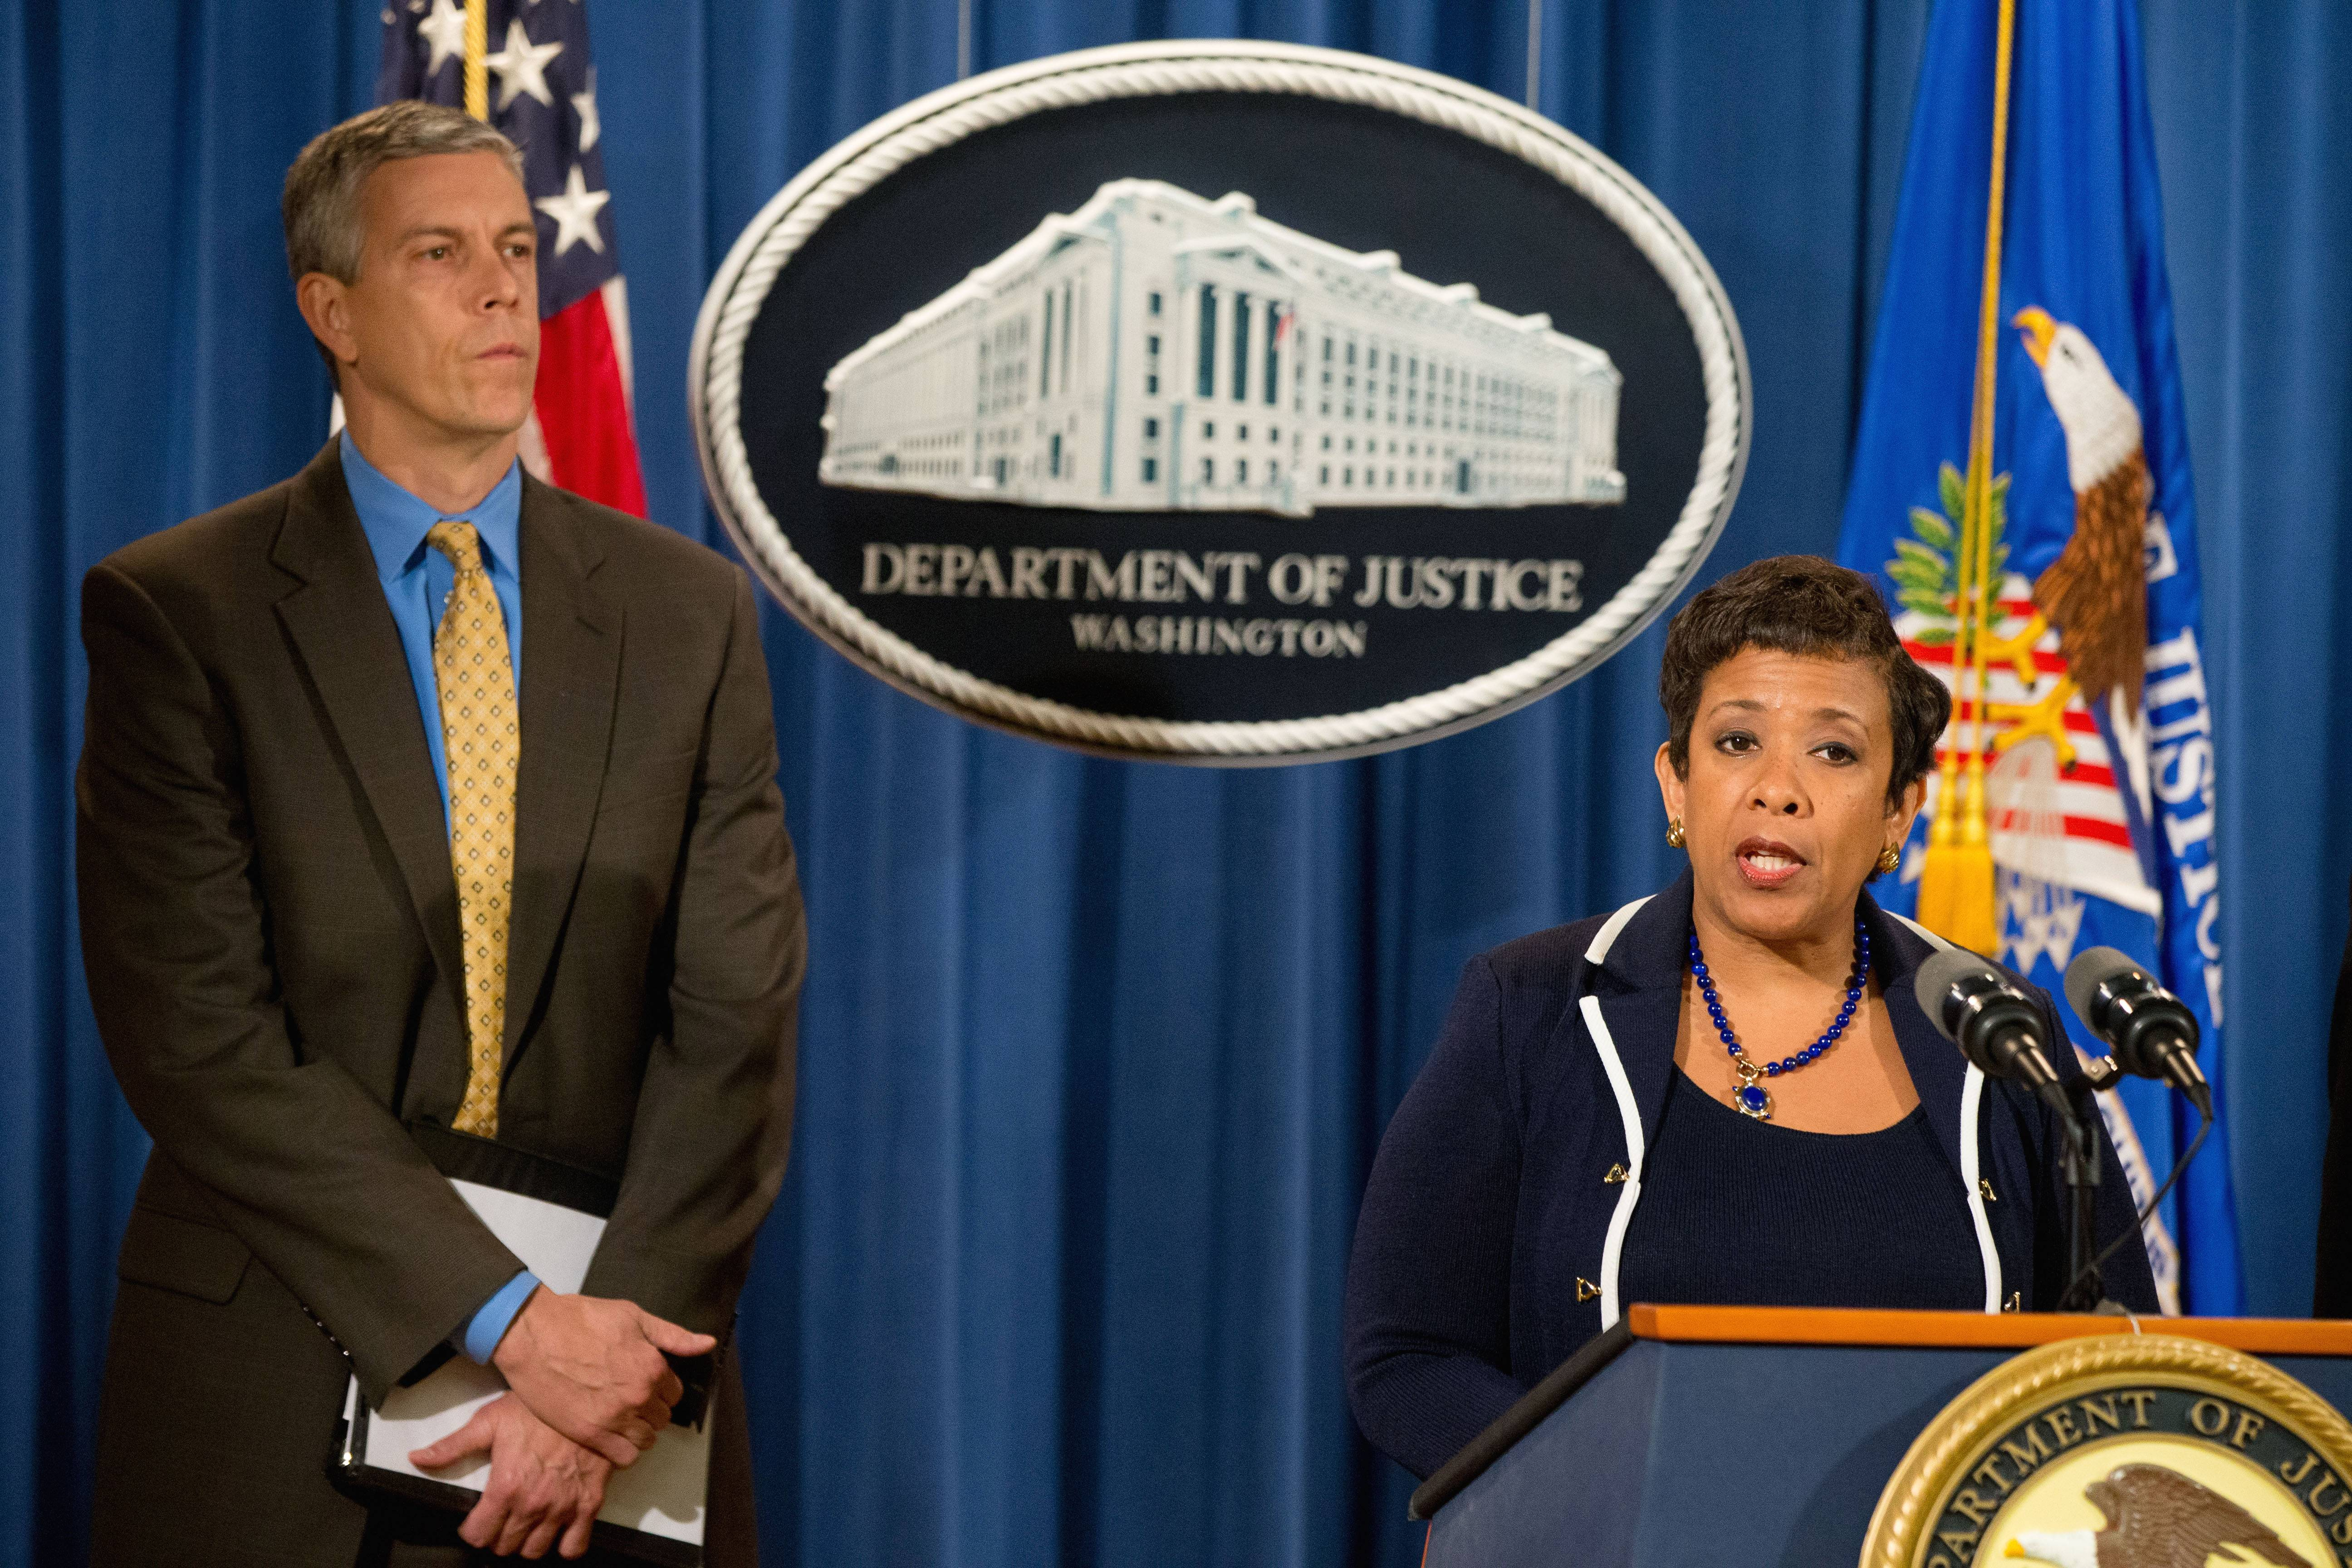 Attorney General Loretta Lynch, accompanied by Education Secretary Arne Duncan, speaks at a news conference at the Justice Department in Washington, Monday, Nov. 16, 2015, to announce a major federal and state civil litigation settlement concerning Educational Management Corp., a Pittsburgh-based company that runs for-profit trade schools.